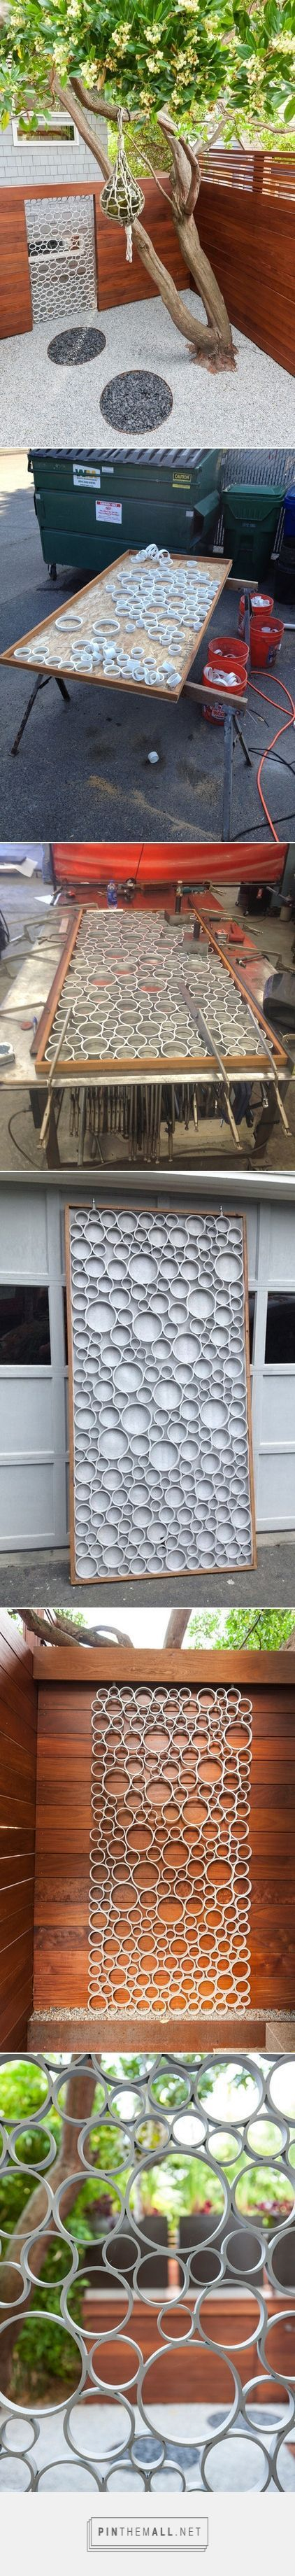 A Designer Uses PVC Pipe to Cast a Modern Garden Gate - created via http://pinthemall.net